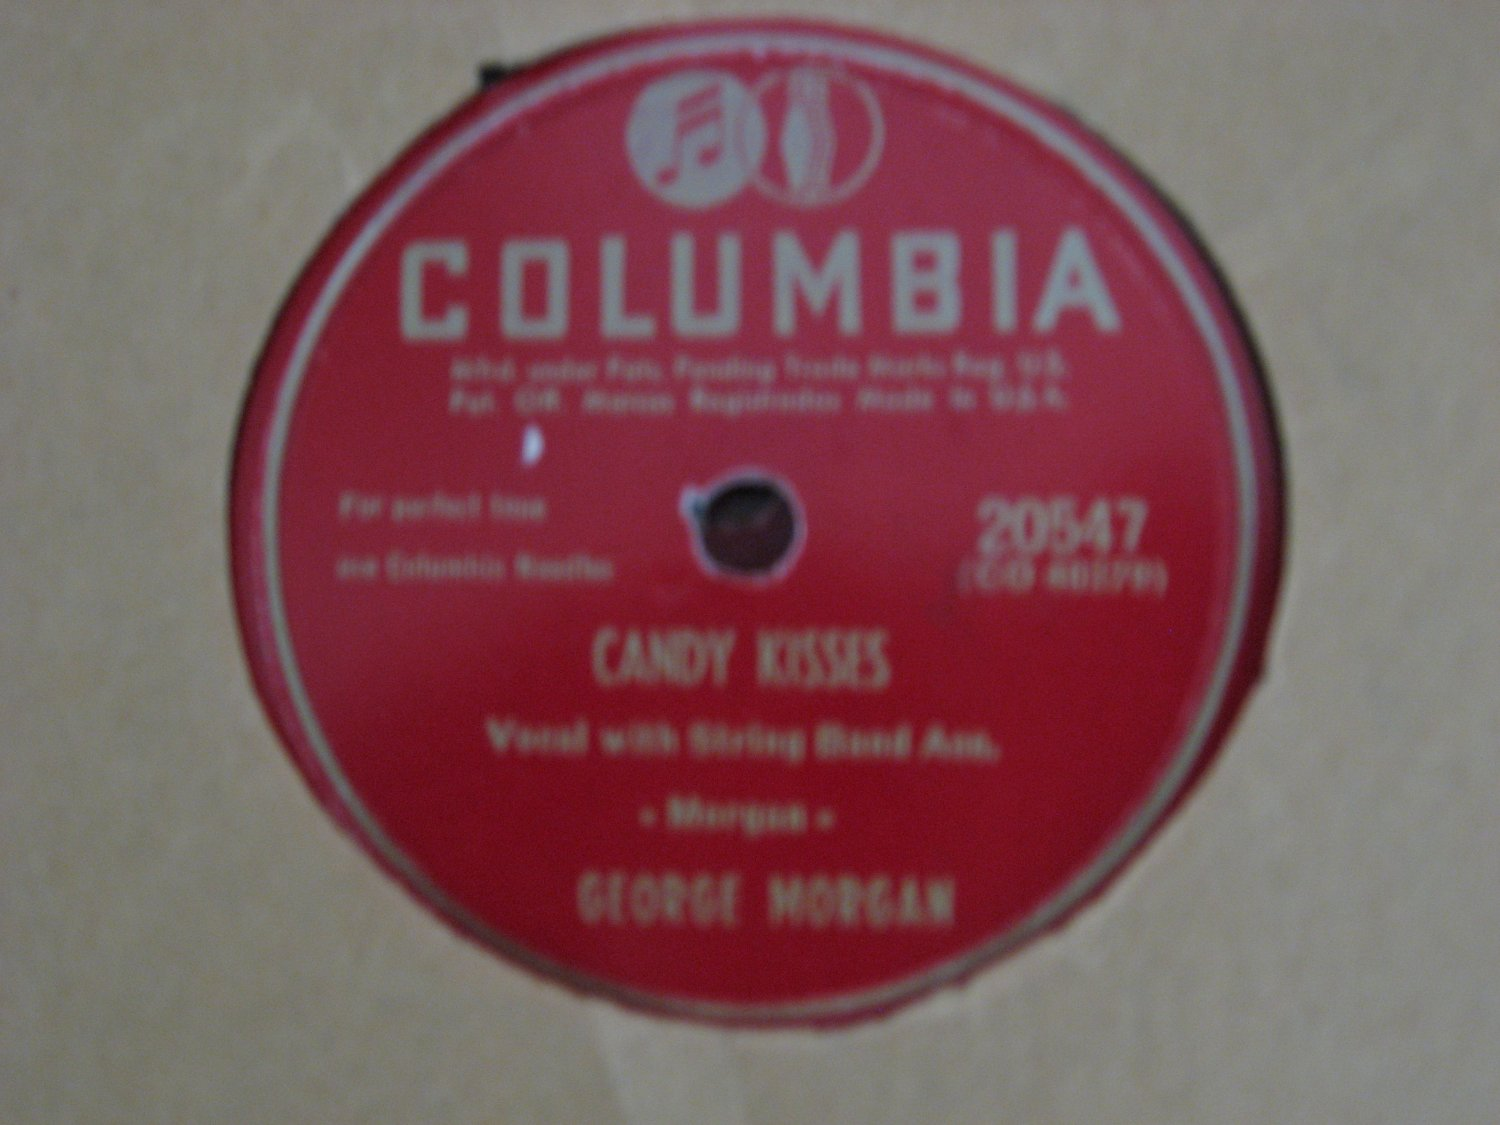 George Morgan - Candy Kisses/Please Don't Let Me Love You - 1951 (Vinyl Records)